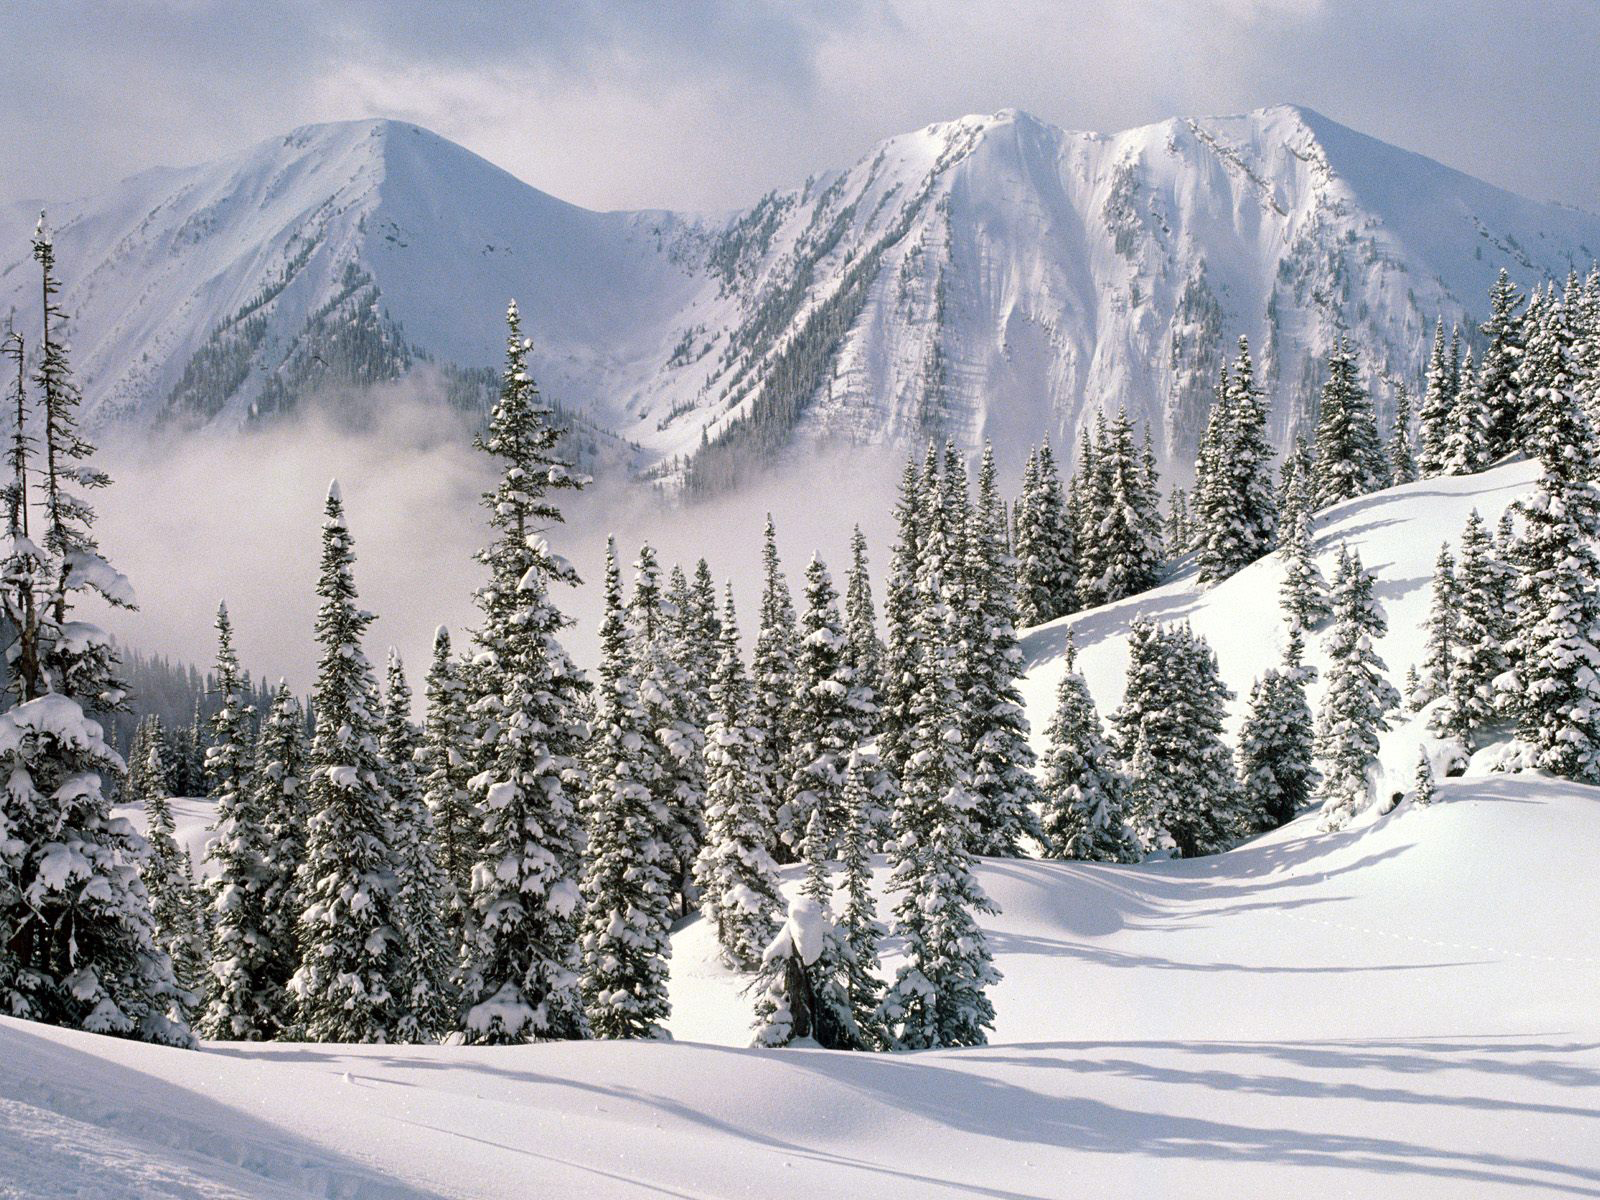 Wallpaper forest snow winter white mountains British Columbia 1600x1200